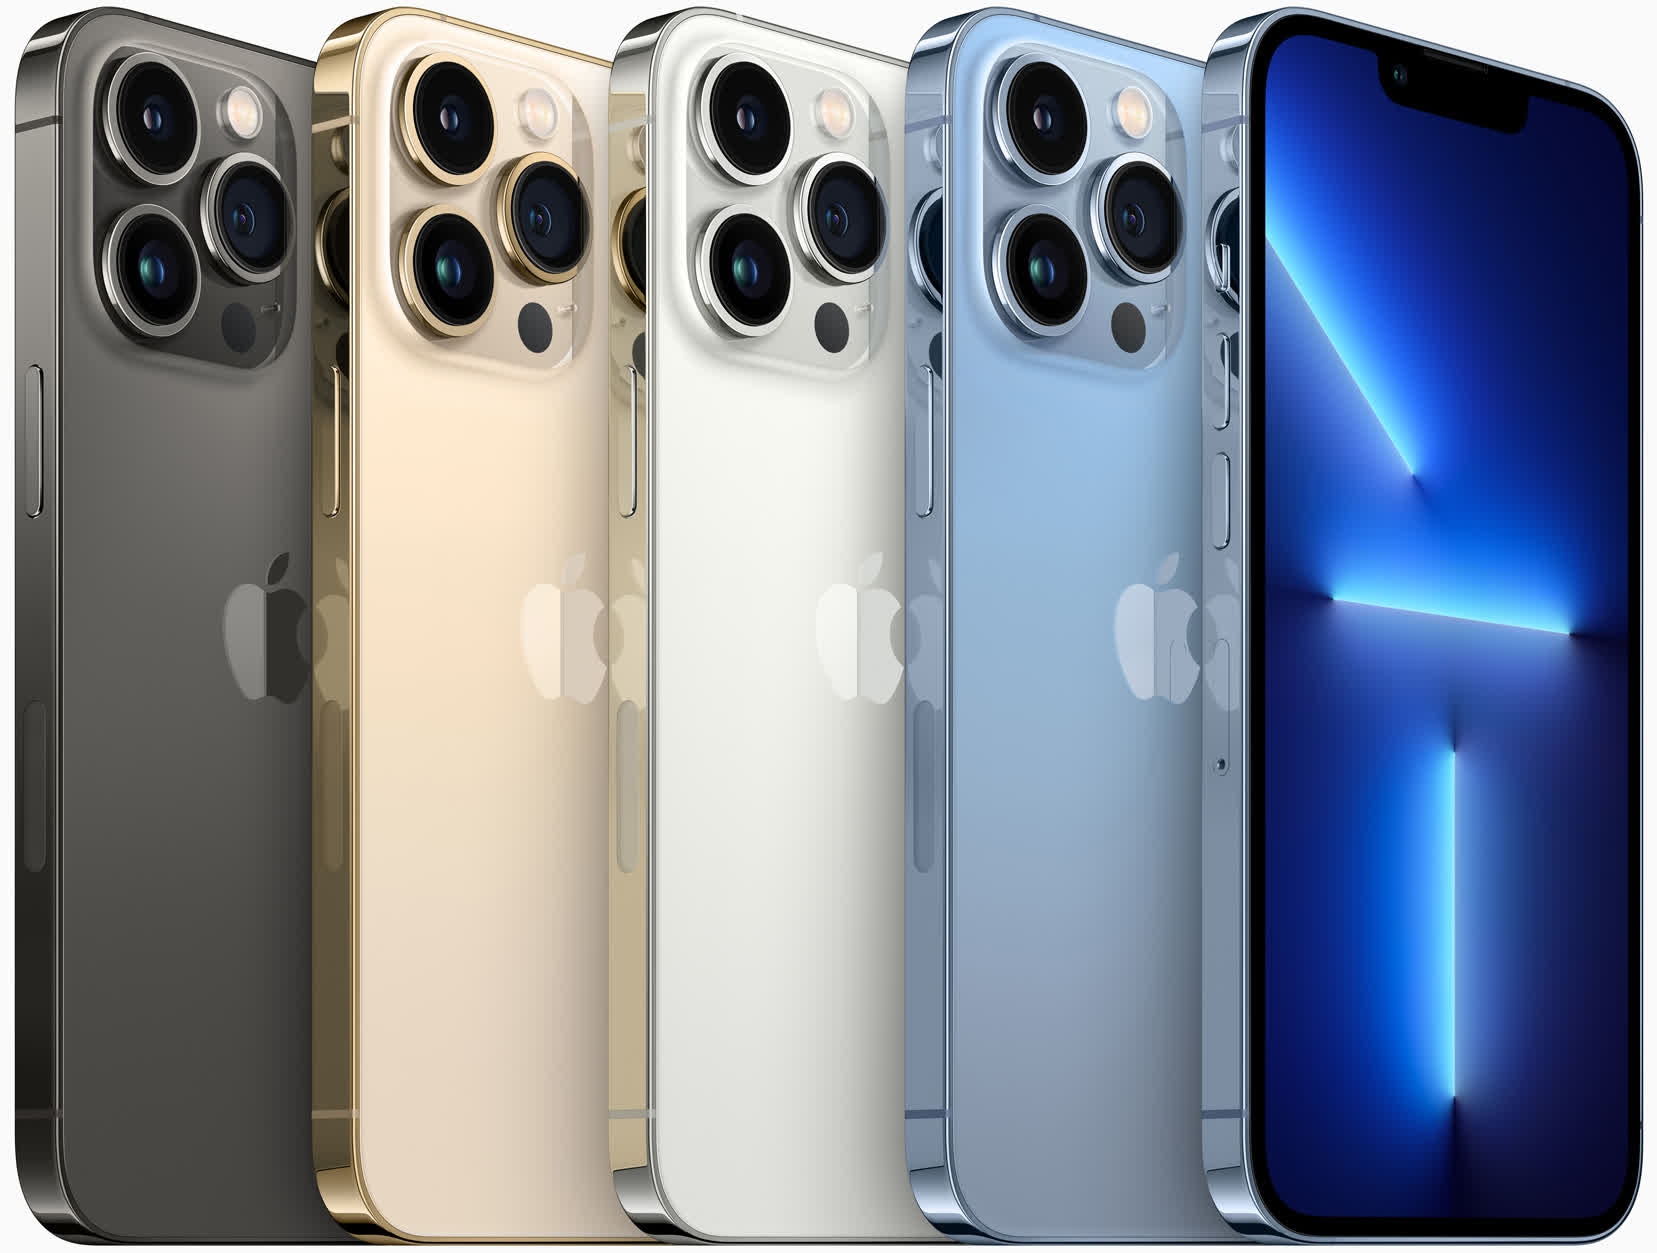 Apple introduces iPhone 13 Pro models featuring an improved camera system, 120Hz displays and better battery life